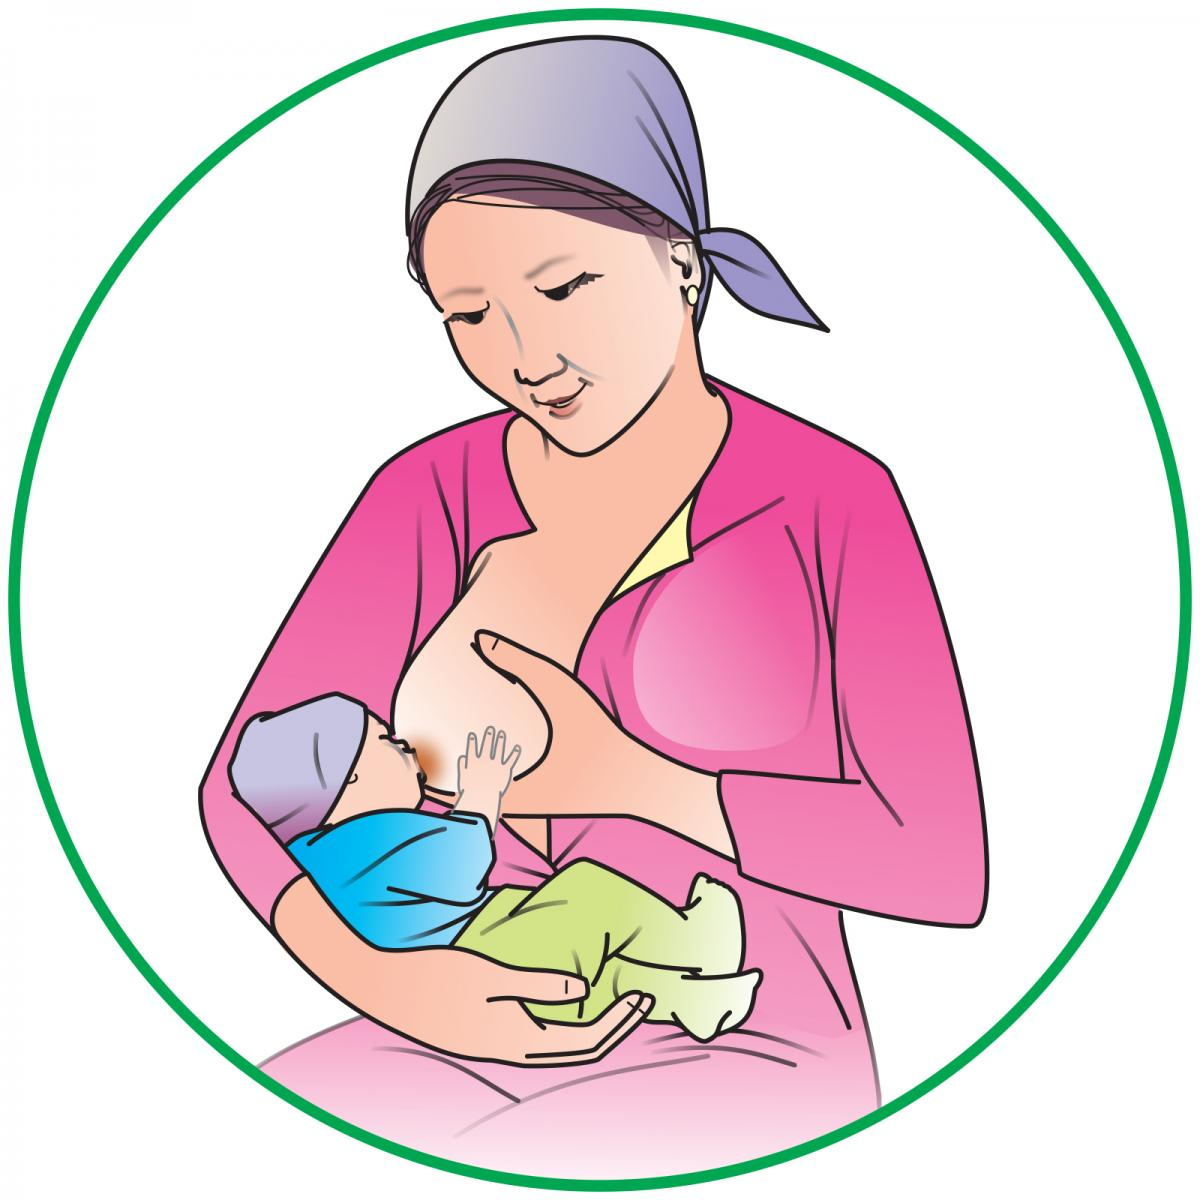 Breastfeeding - Breastfeeding 6mo 6mo - 01 - Kyrgyz Republic